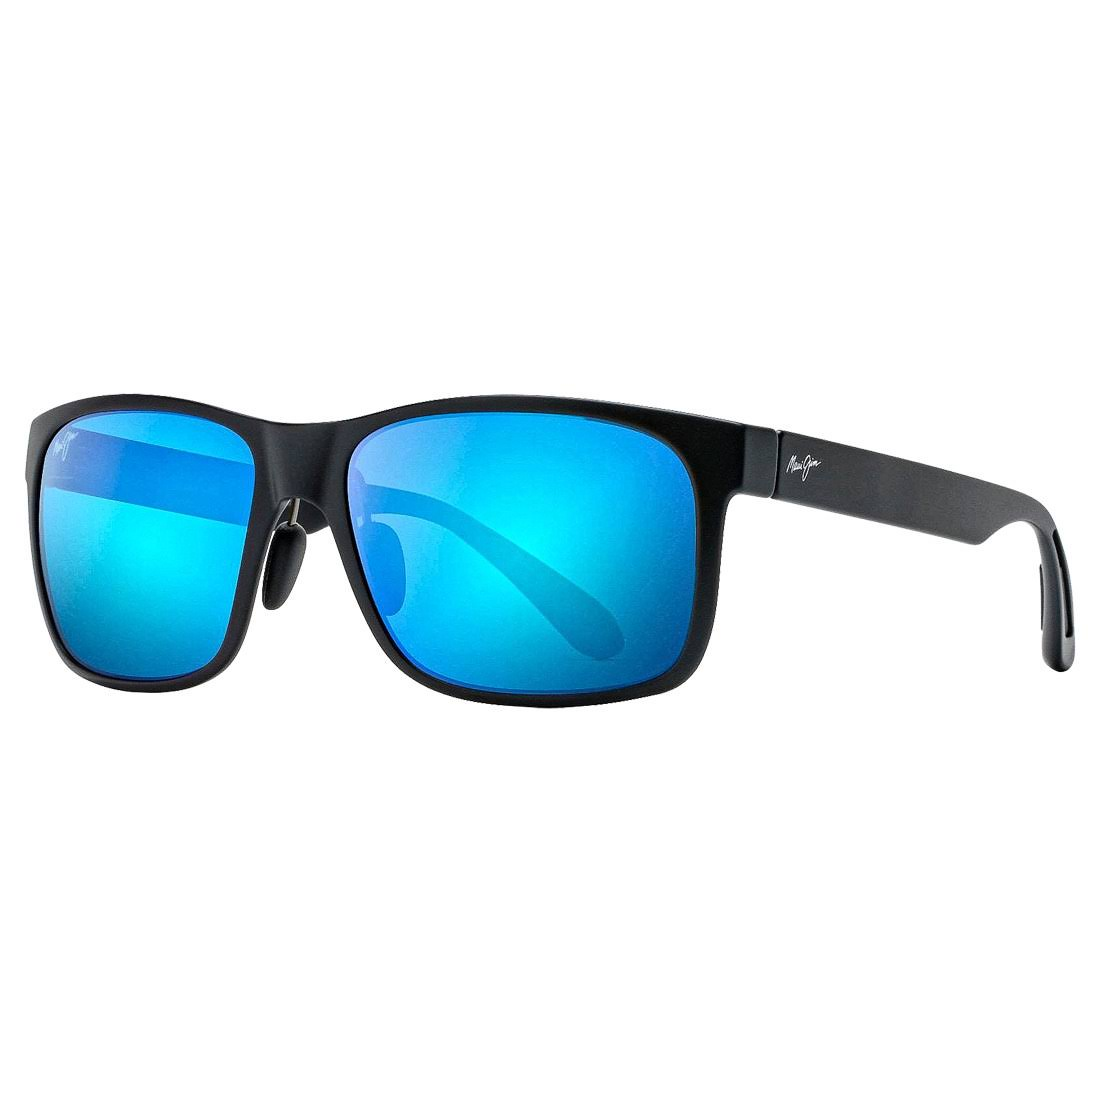 Maui Jim Red Sands Matte Black Blue Hawaii Unisex Sunglasses